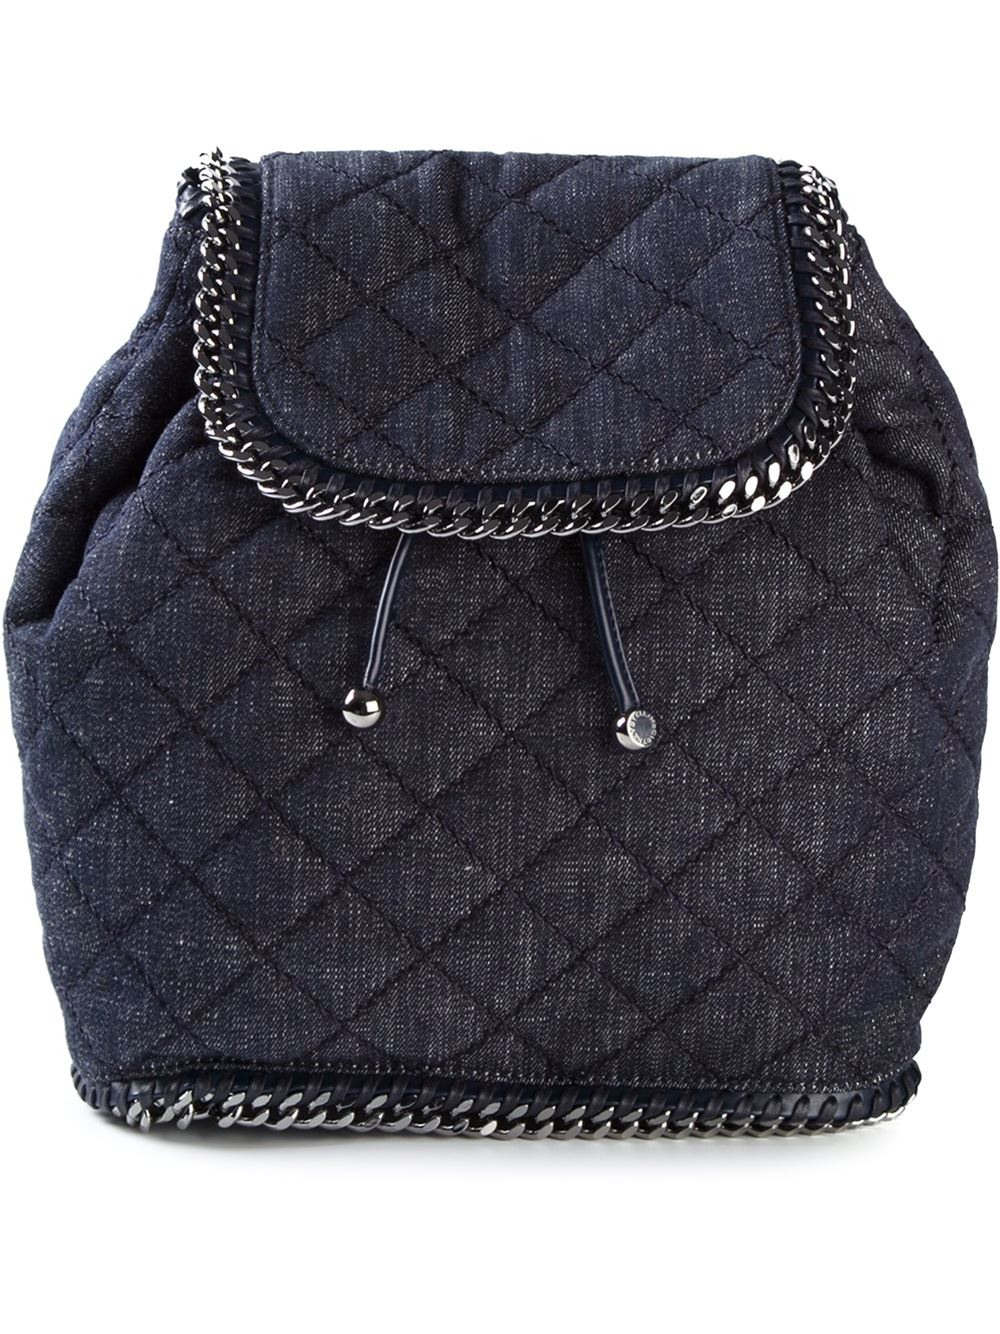 stella mccartney 39 falabella 39 denim backpack in blue lyst. Black Bedroom Furniture Sets. Home Design Ideas